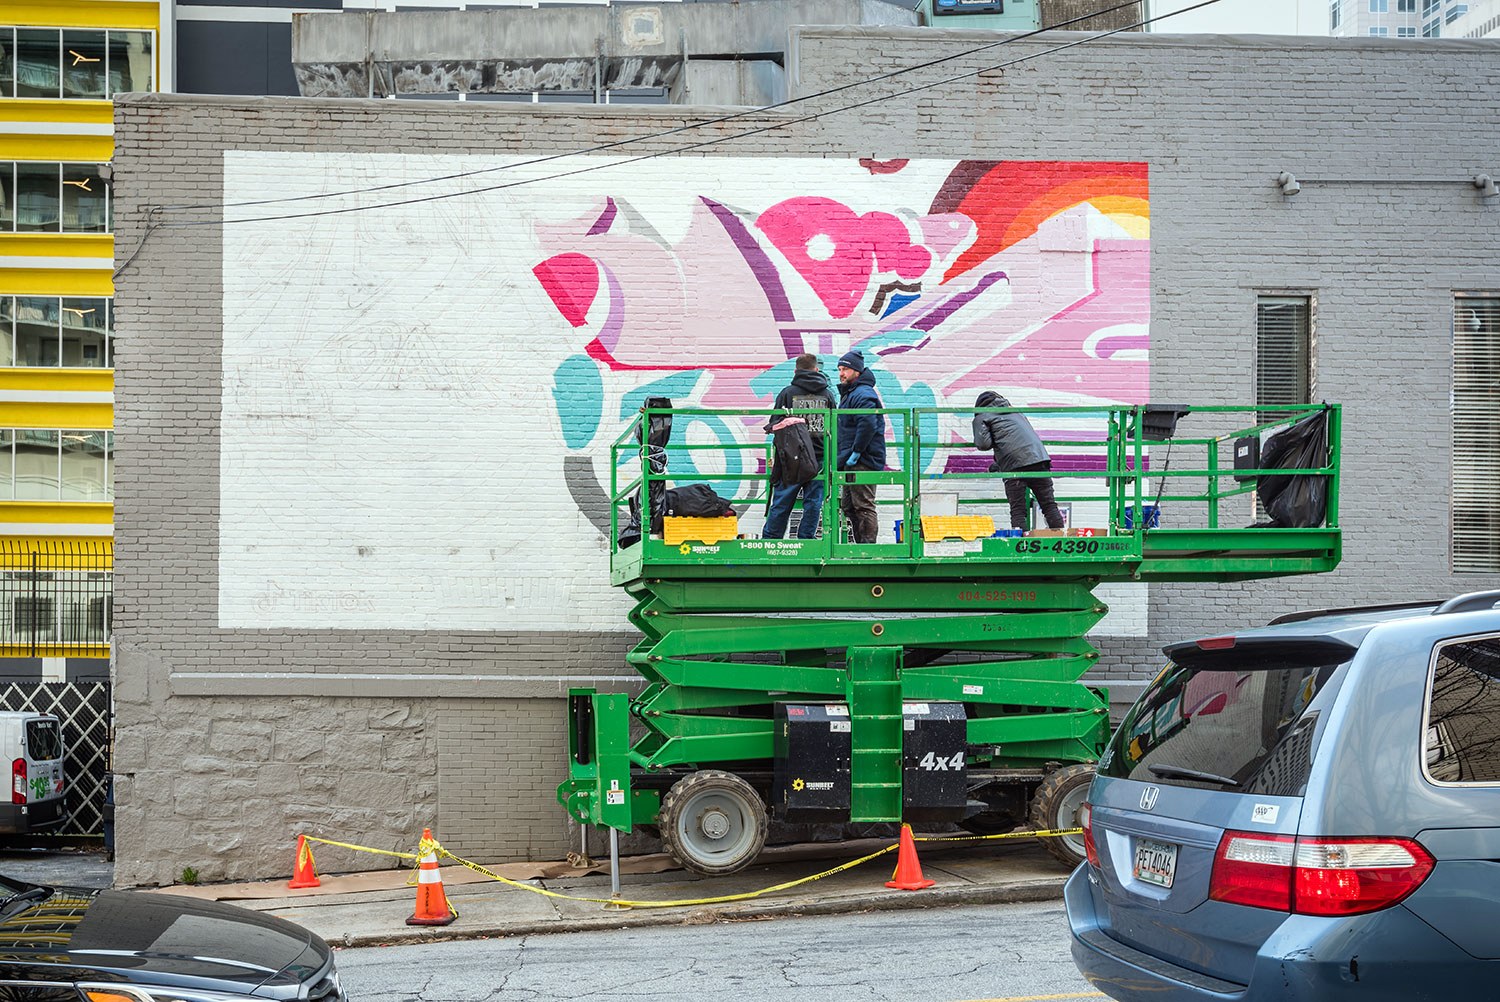 Street Artists Paint Mural for TikTok in Atlanta